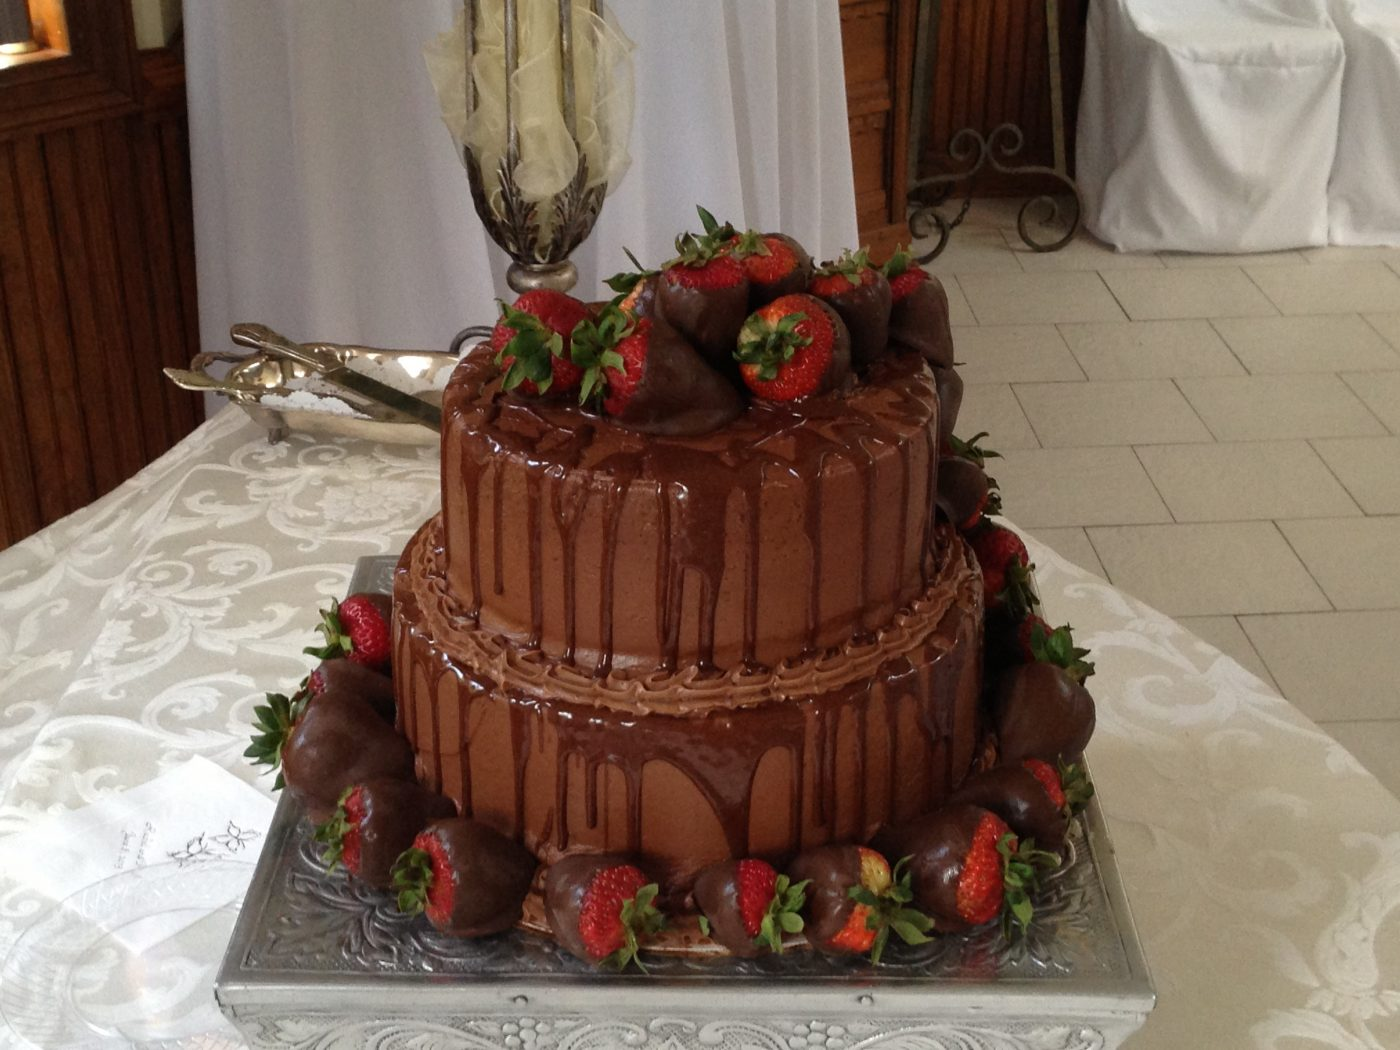 Chocolate Groom's Cake with Chocolate Covered Strawberries